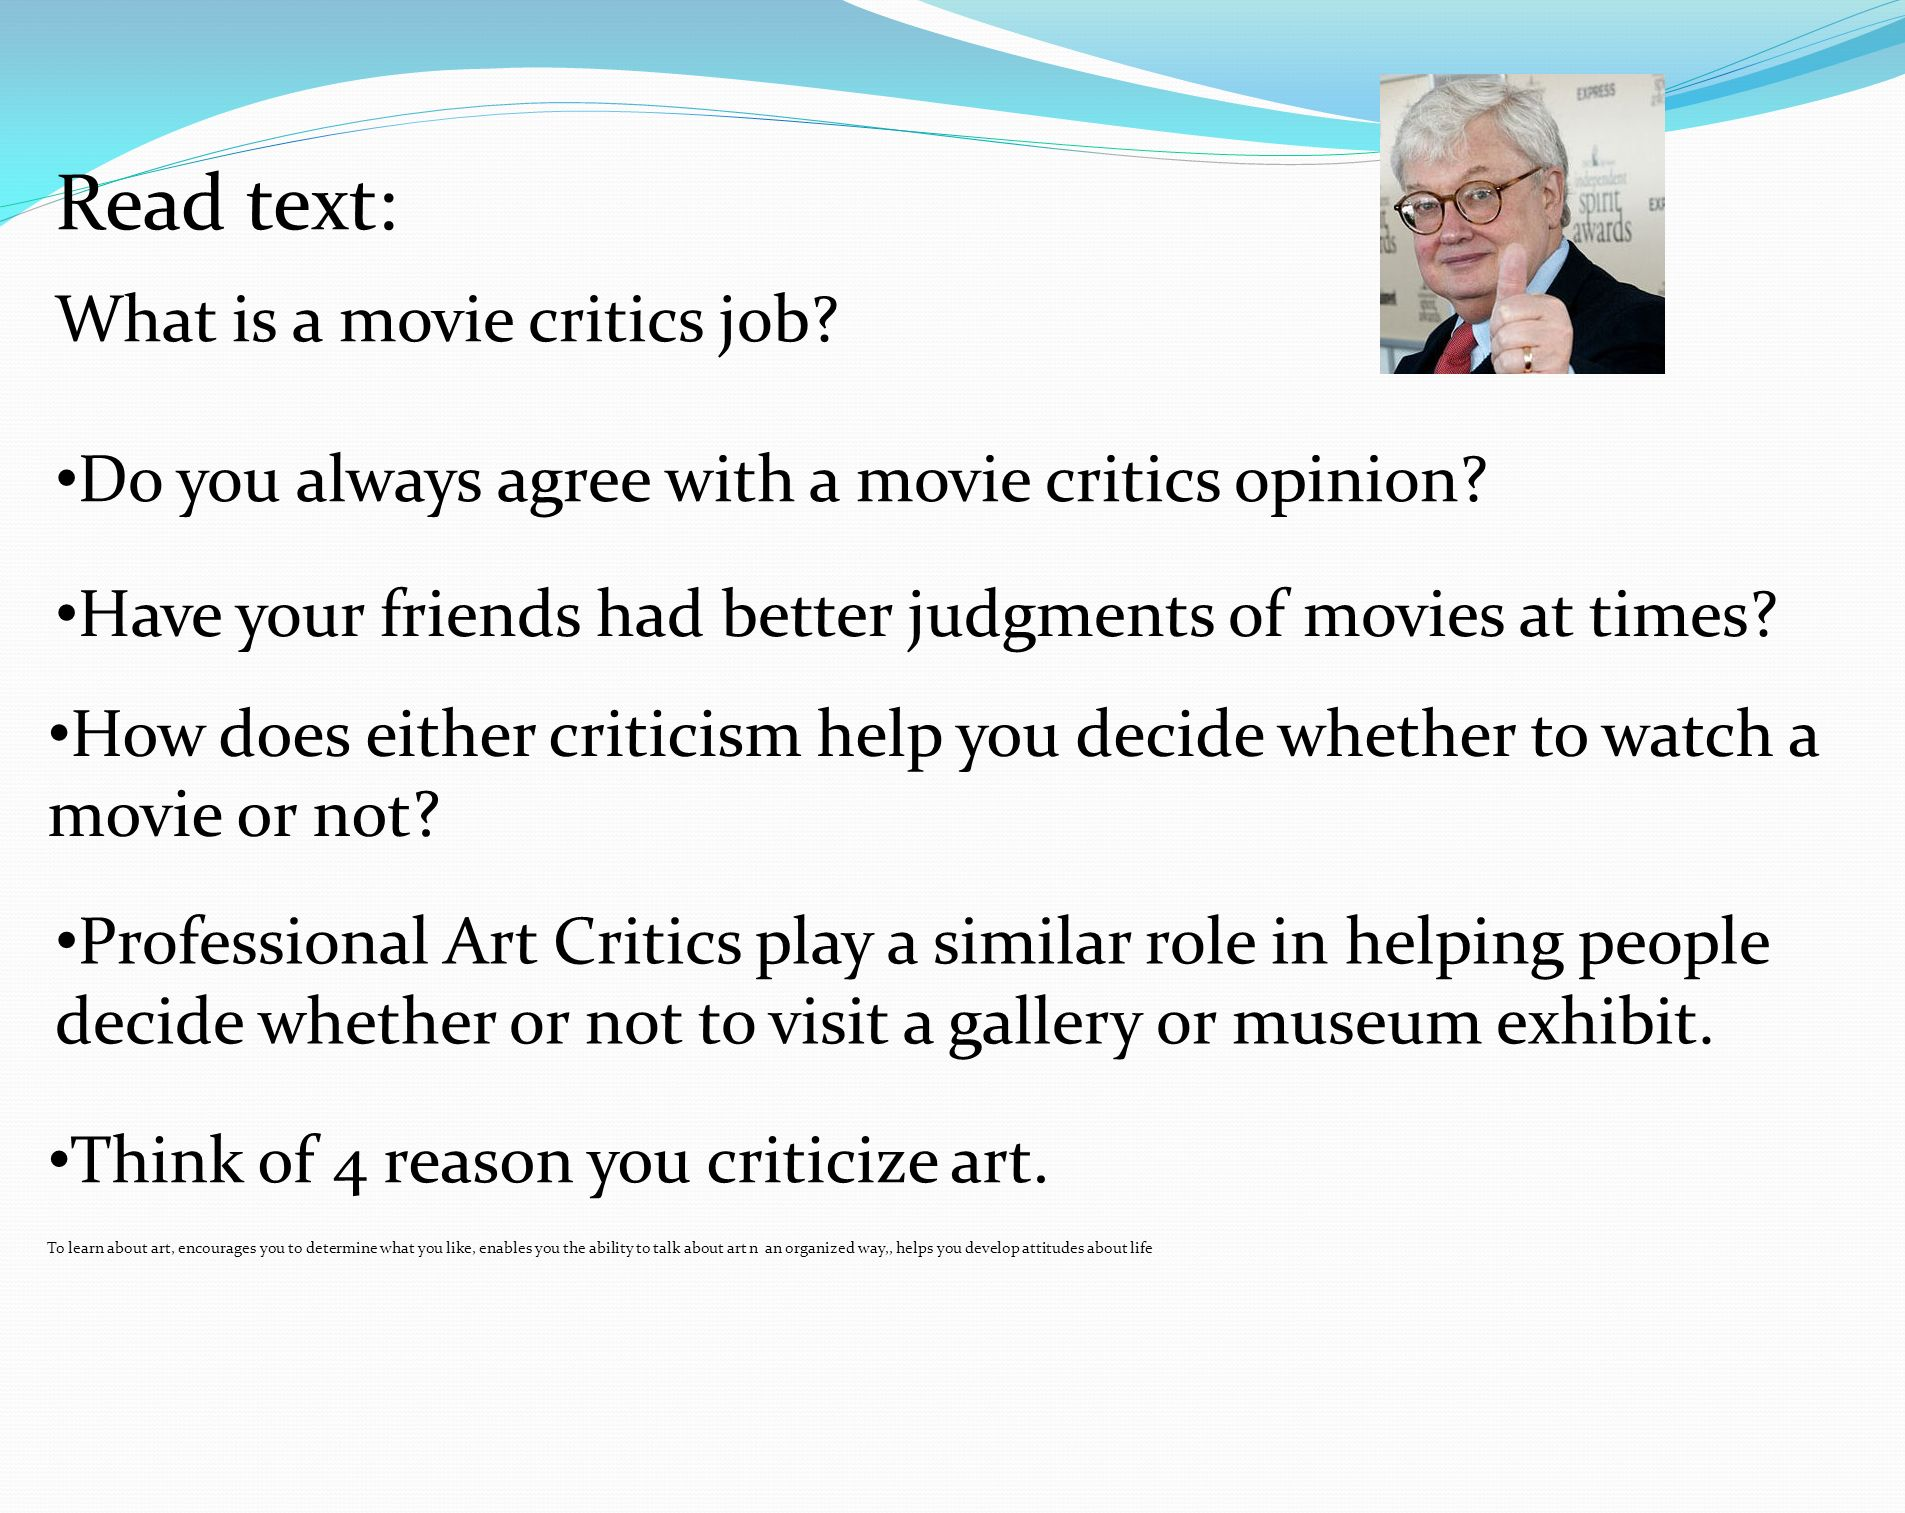 Read text: What is a movie critics job